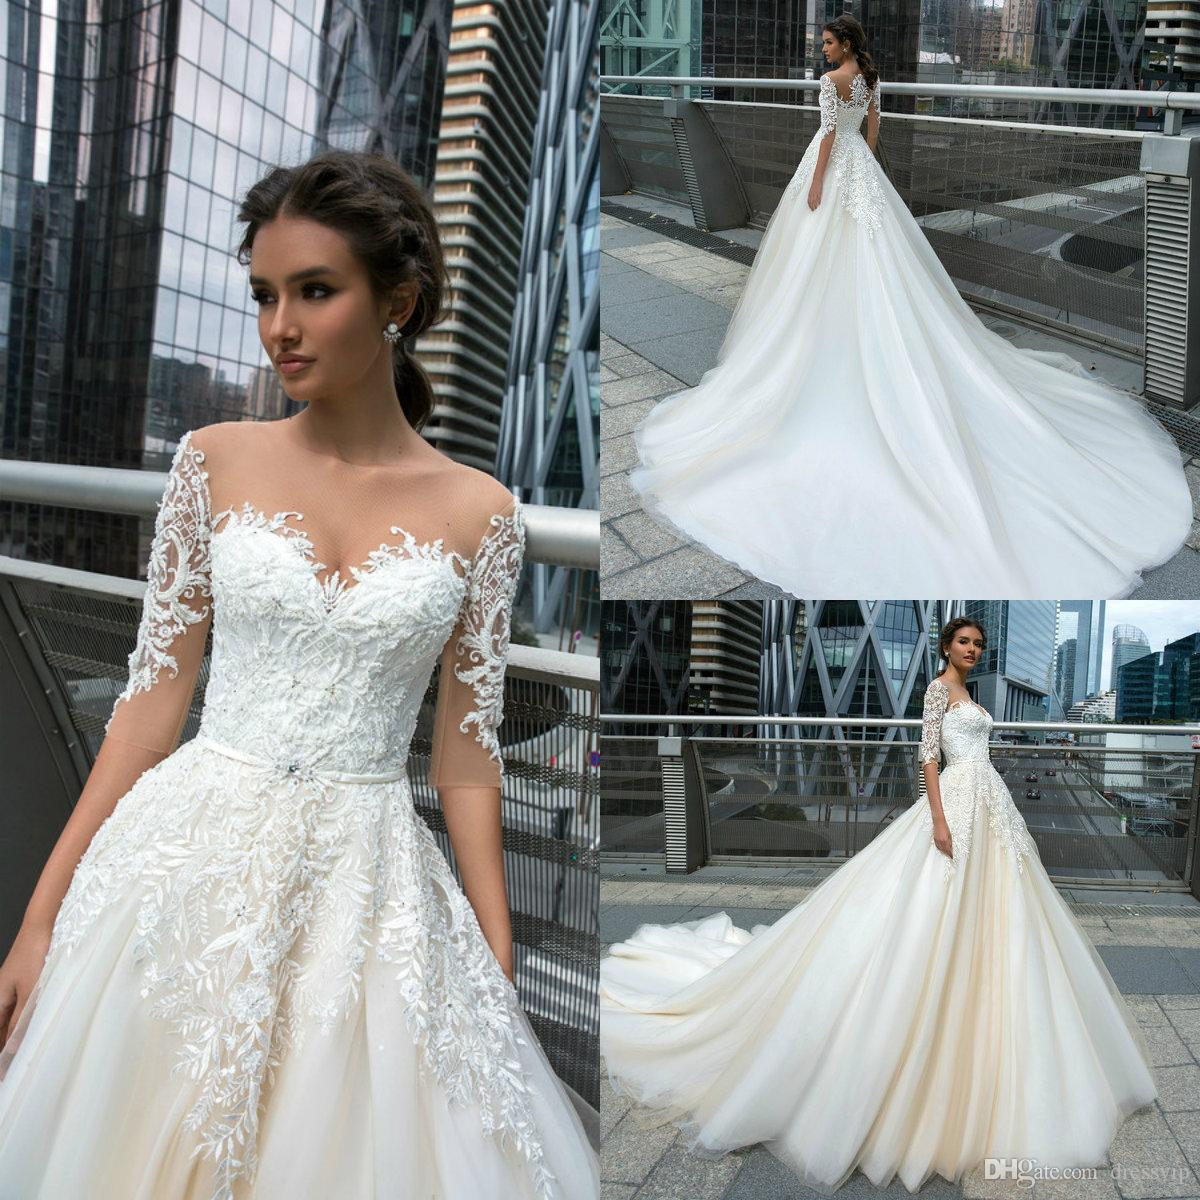 Design A Wedding Dress.2019 Crystal Design Beach Wedding Dresses Jewel Neck A Line Half Long Sleeve Lace Bridal Gowns Appliques Beaded Country Wedding Dress